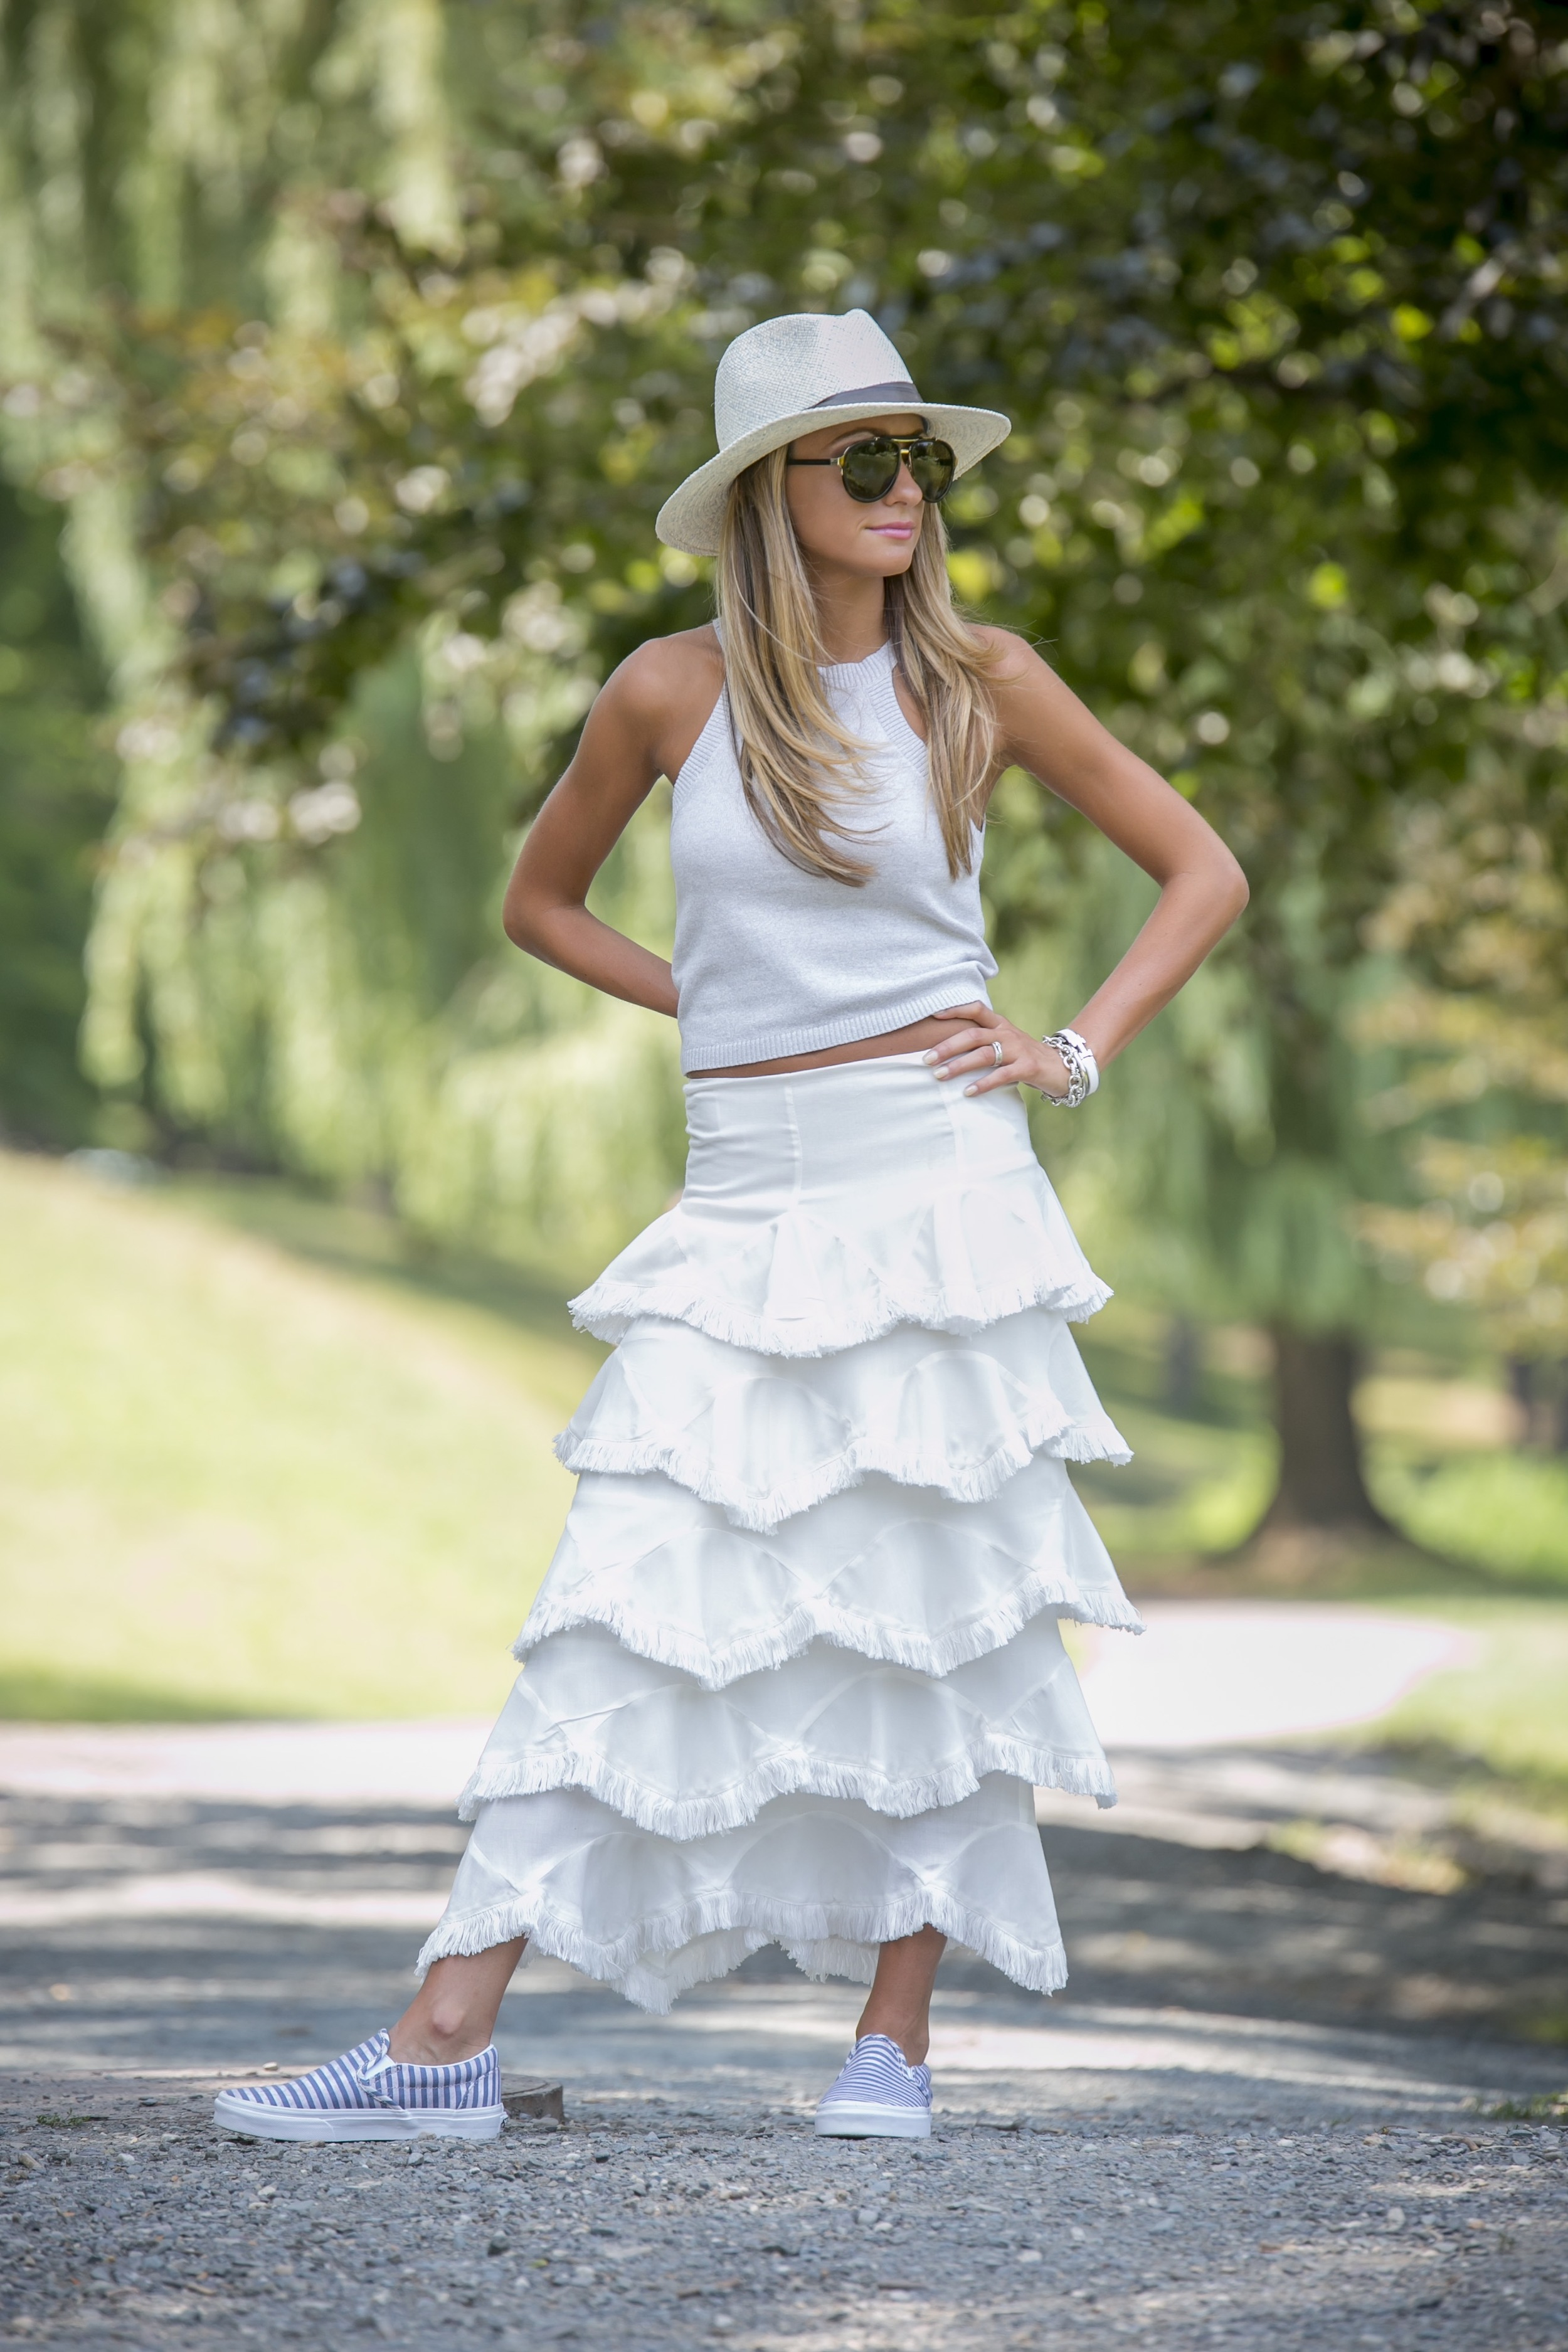 forever21 top paired with an asos tiered ruffle skirt with frayed trims